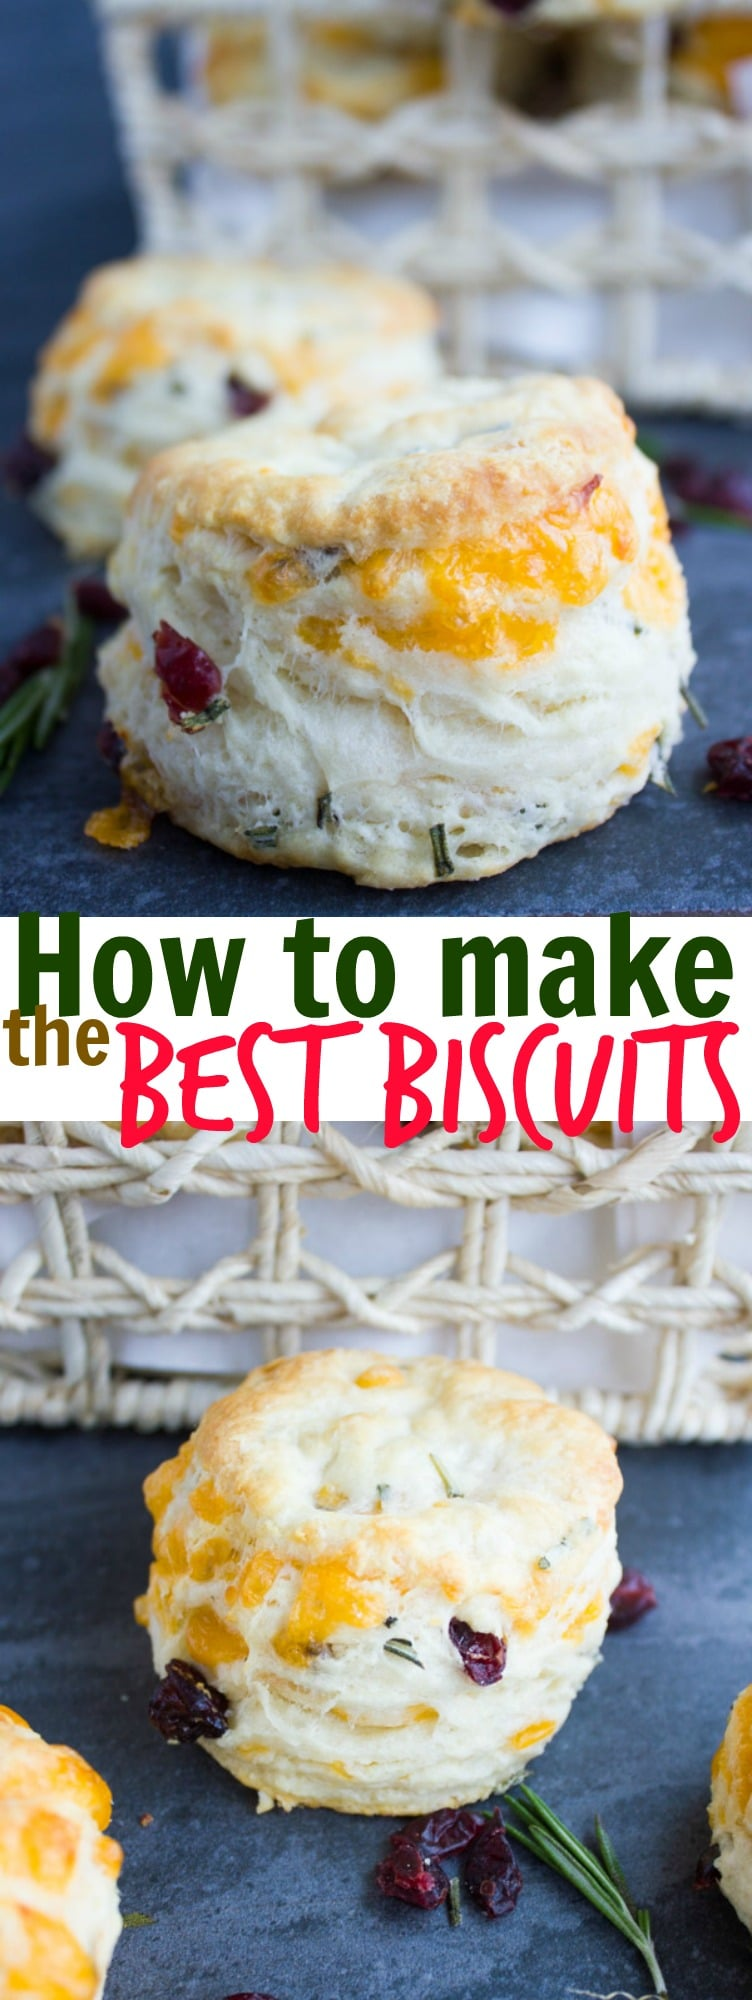 How to make biscuits at home - pin